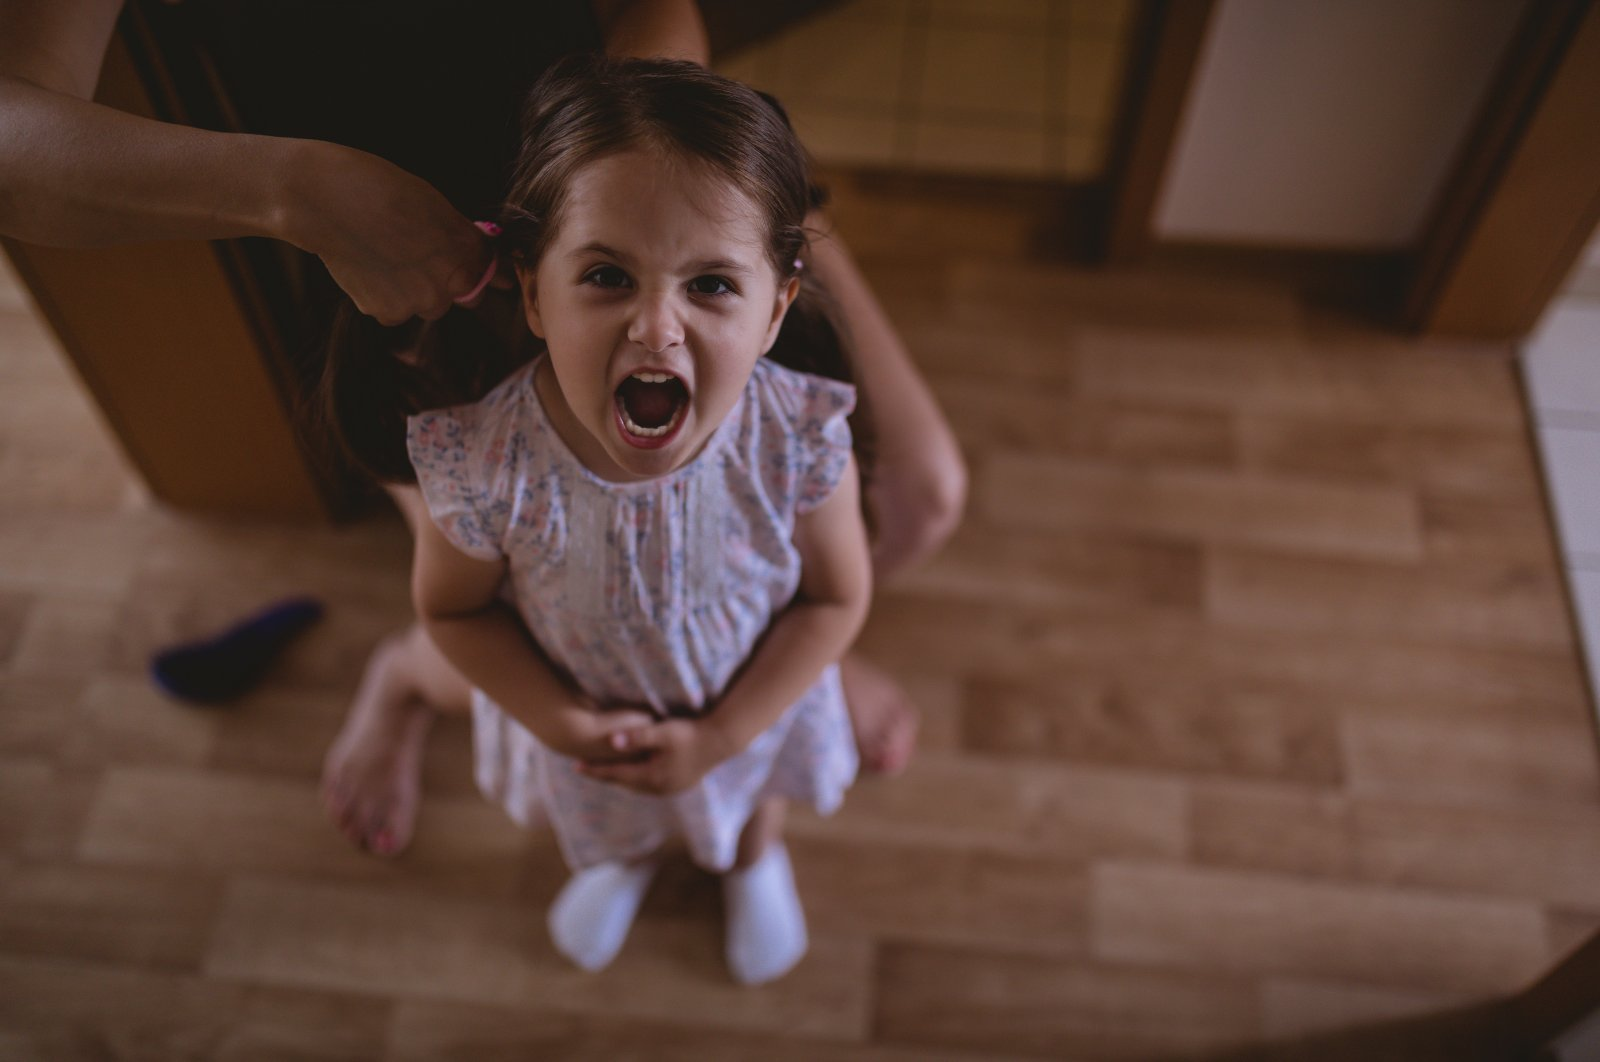 If your child is showing signs of aggression or changes in eating or sleeping habits, it may be time to consult an expert. (iStock Photo)